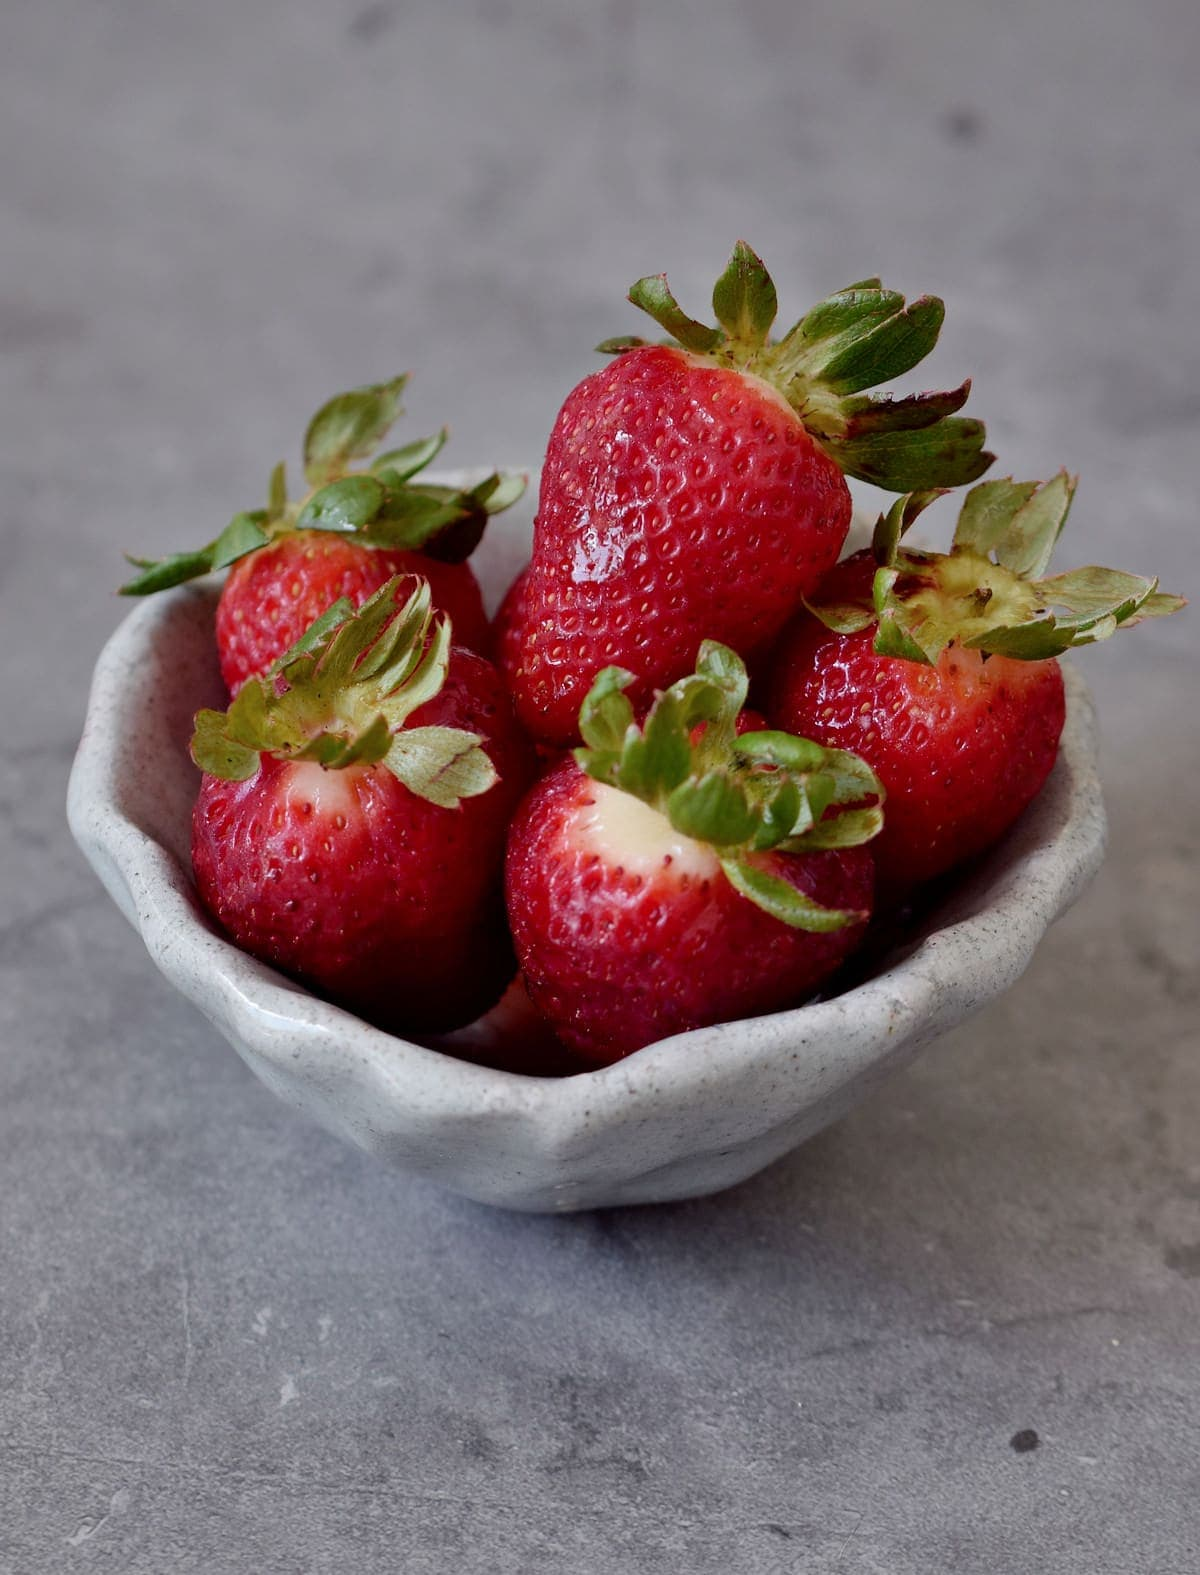 strawberries in a gray ceramic dish